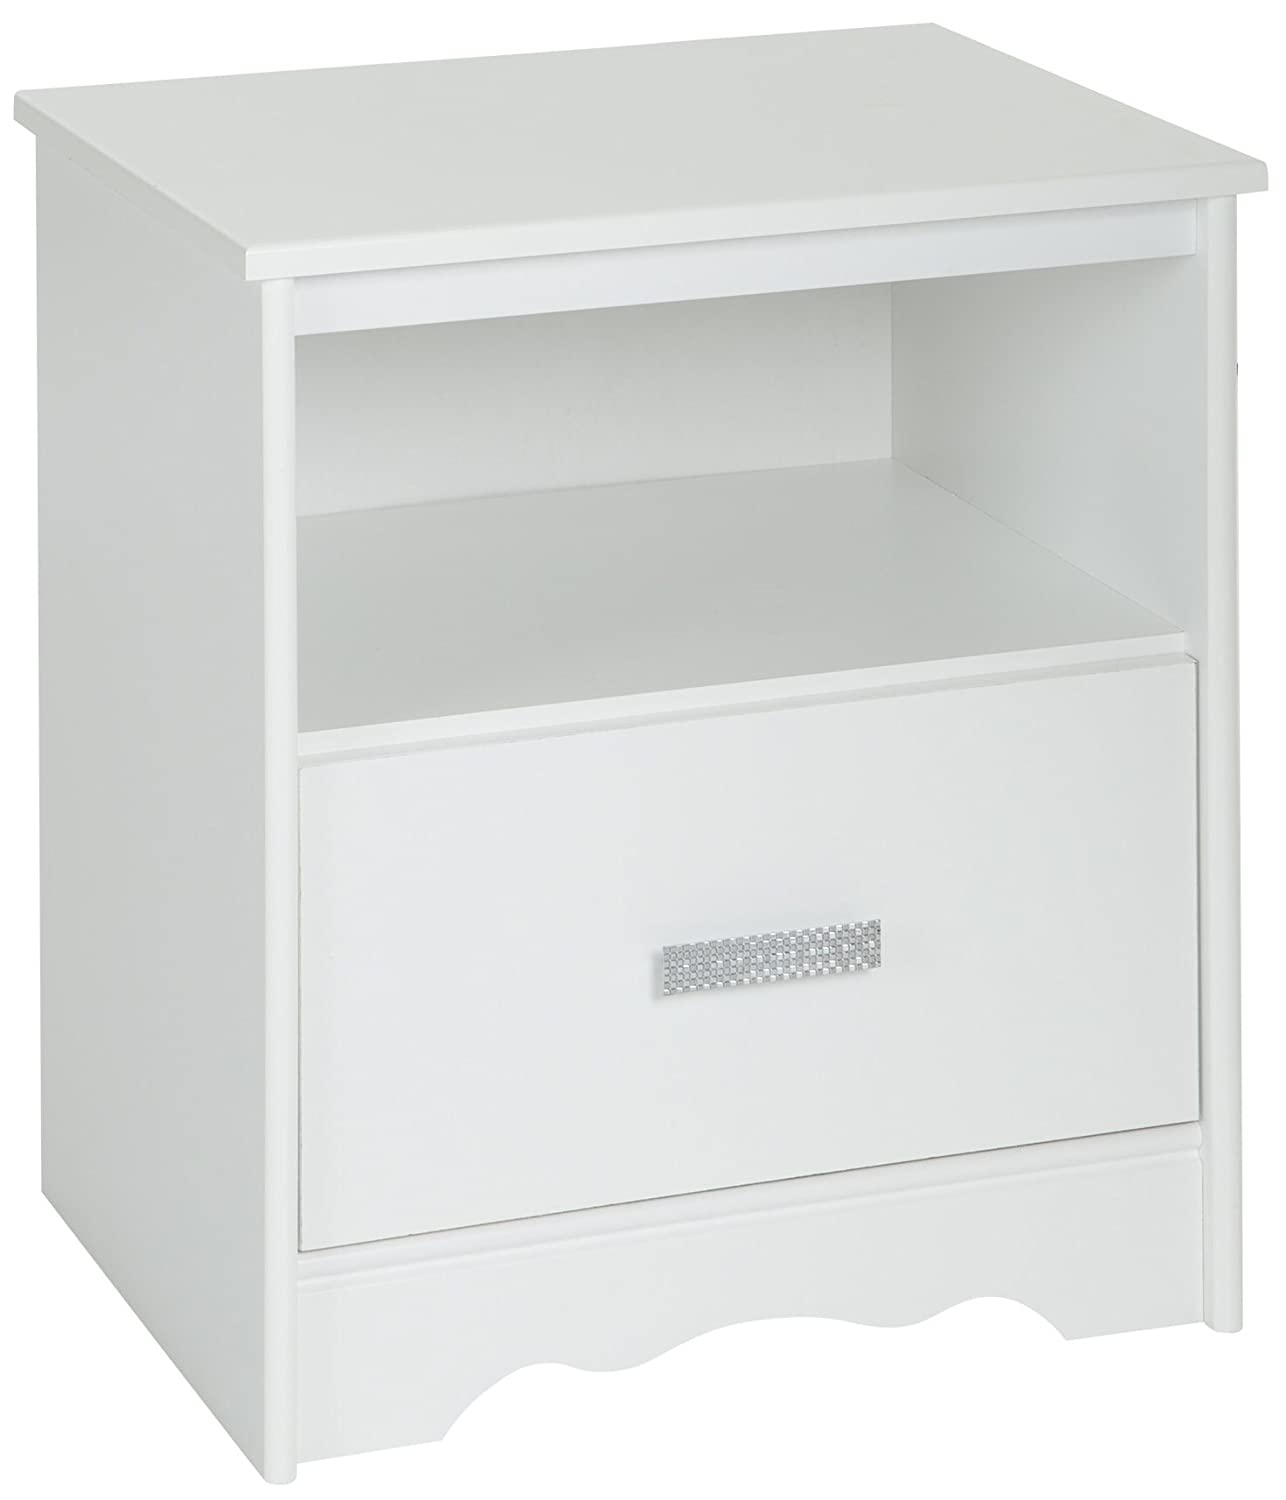 South Shore Furniture Tiara 1-Drawer Night Stand, Pure White 9059062